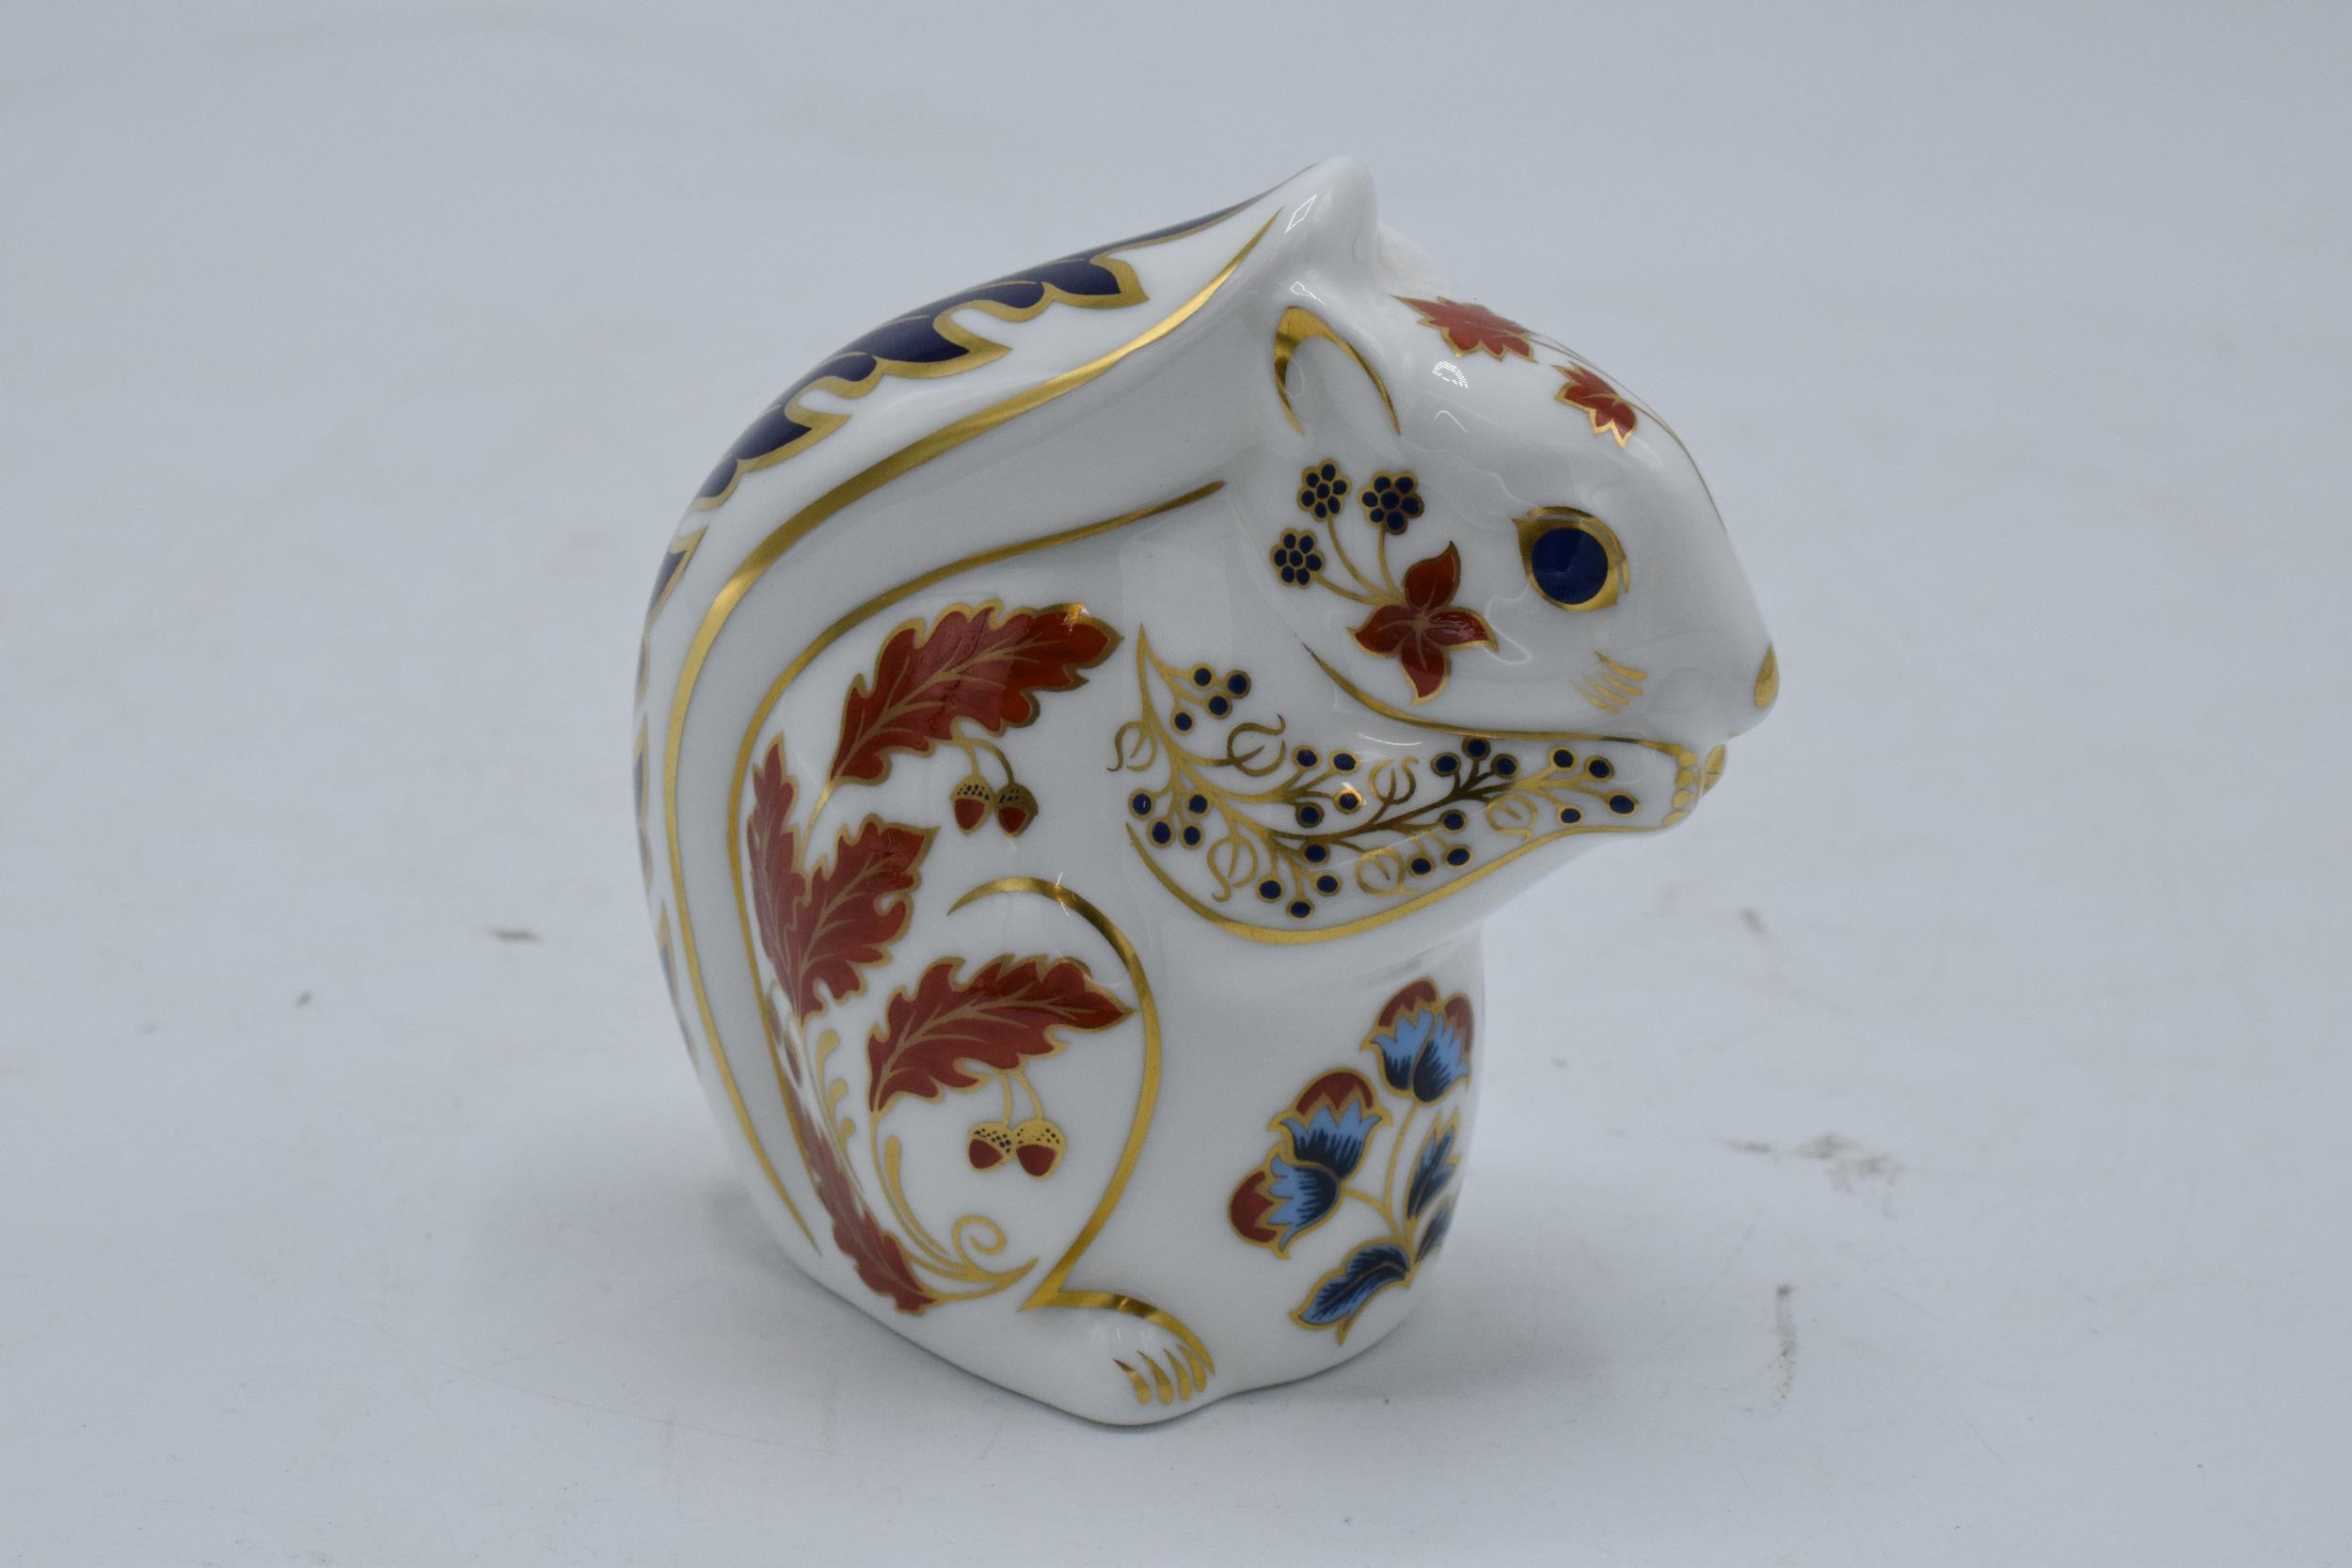 Boxed Royal Crown Derby paperweight in the form of a Squirrel. First quality with stopper. In good